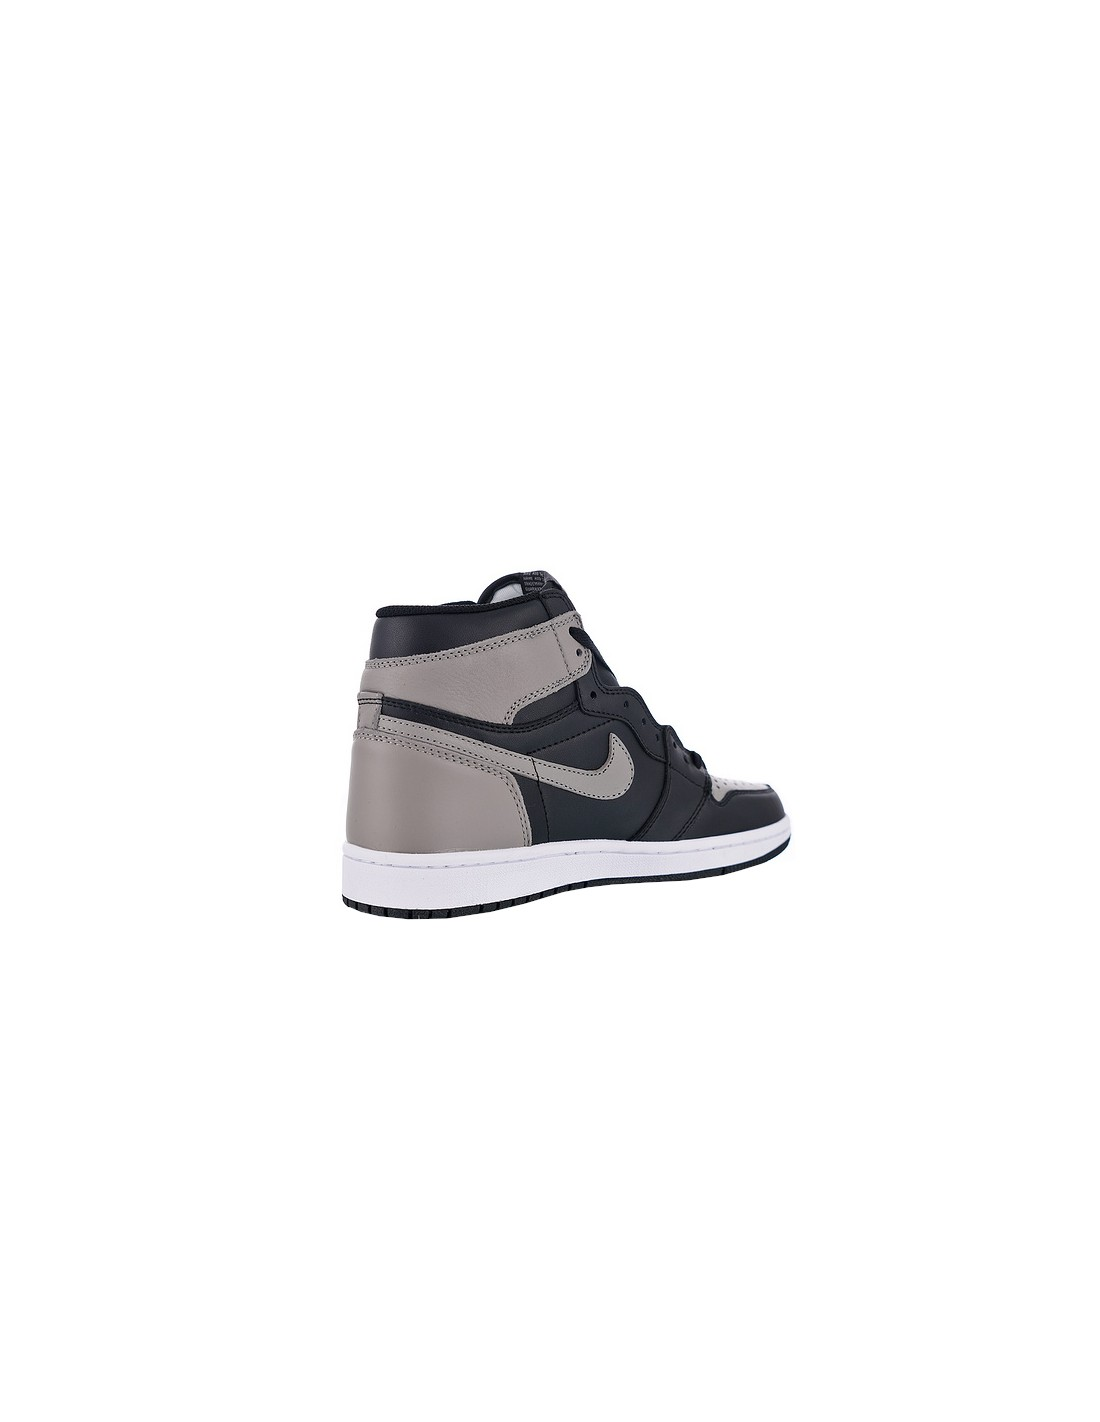 "Home · Air Jordan 1 Retro High OG x Travis Scott ""Shadow"". Previous. Next.  Previous 0f31a4acb"